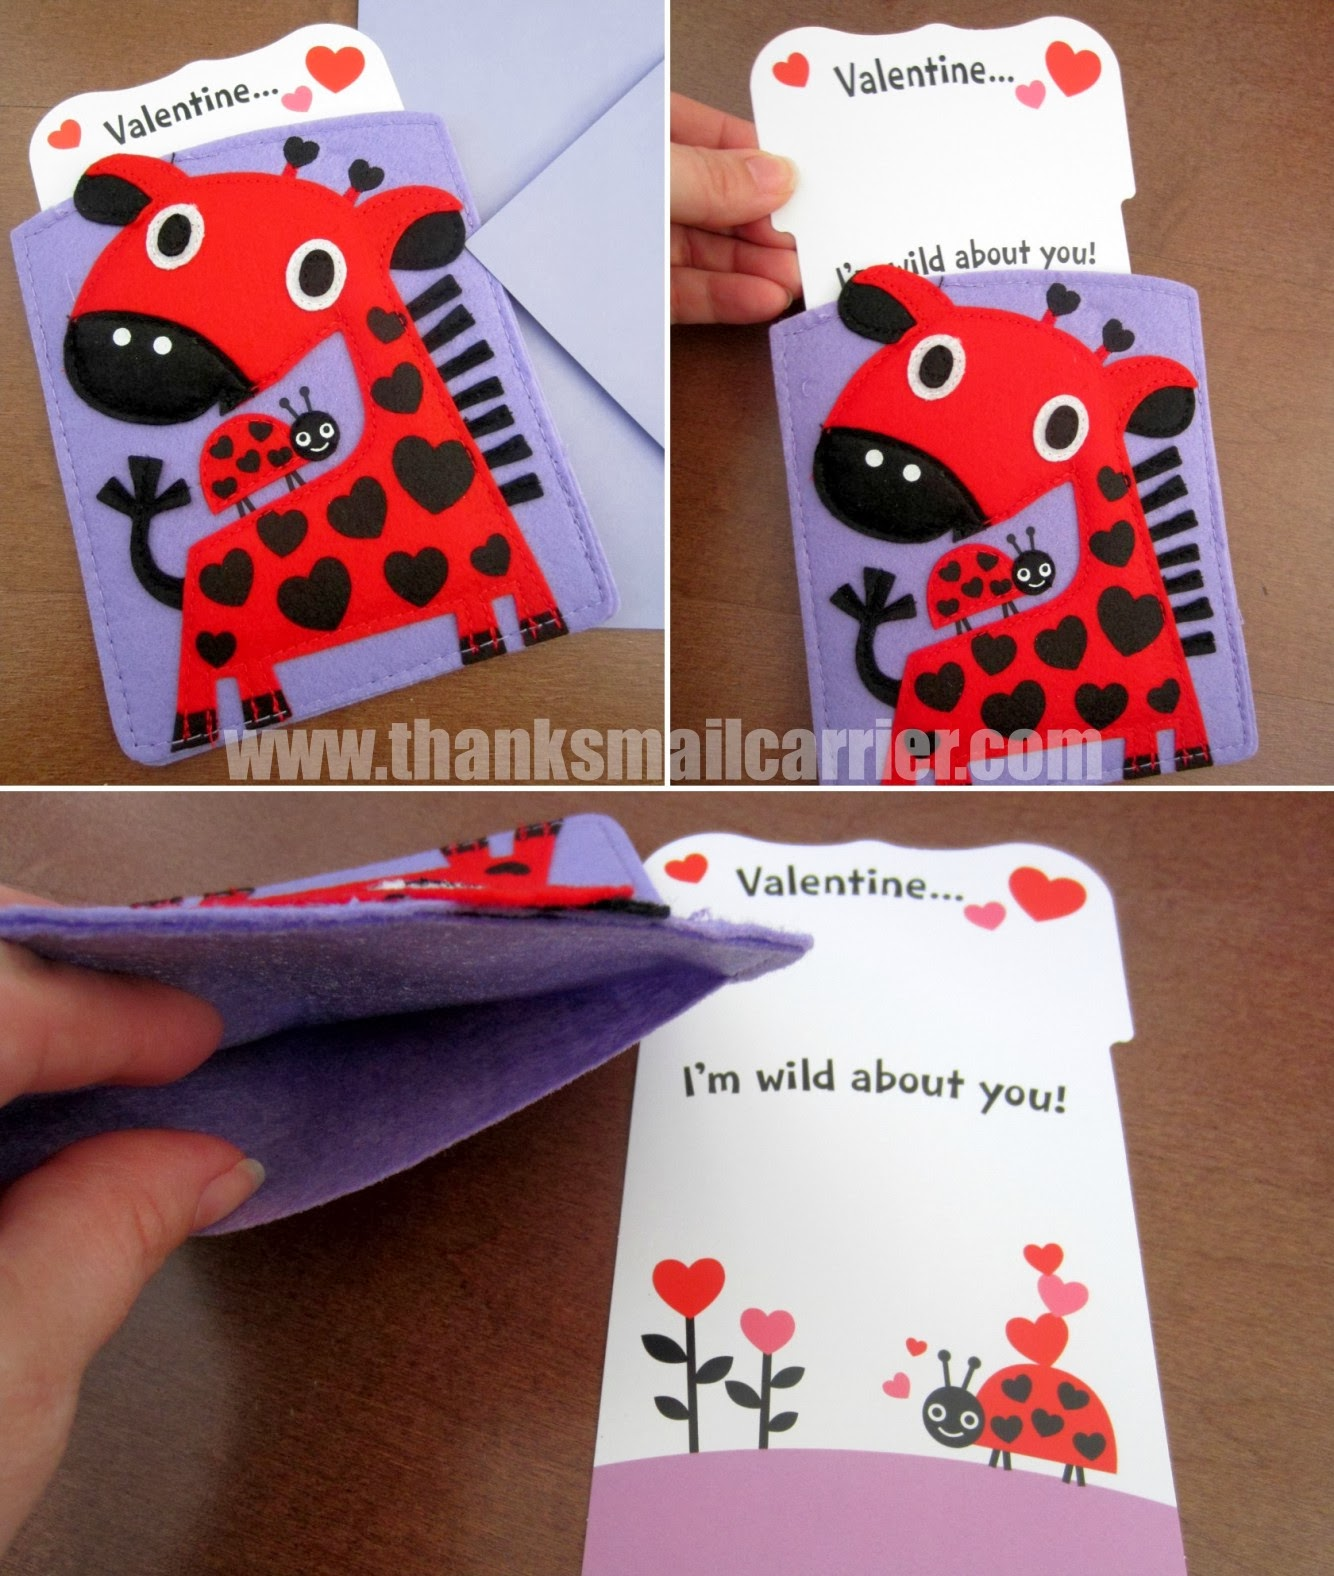 Thanks Mail Carrier – Hallmark Valentine Cards